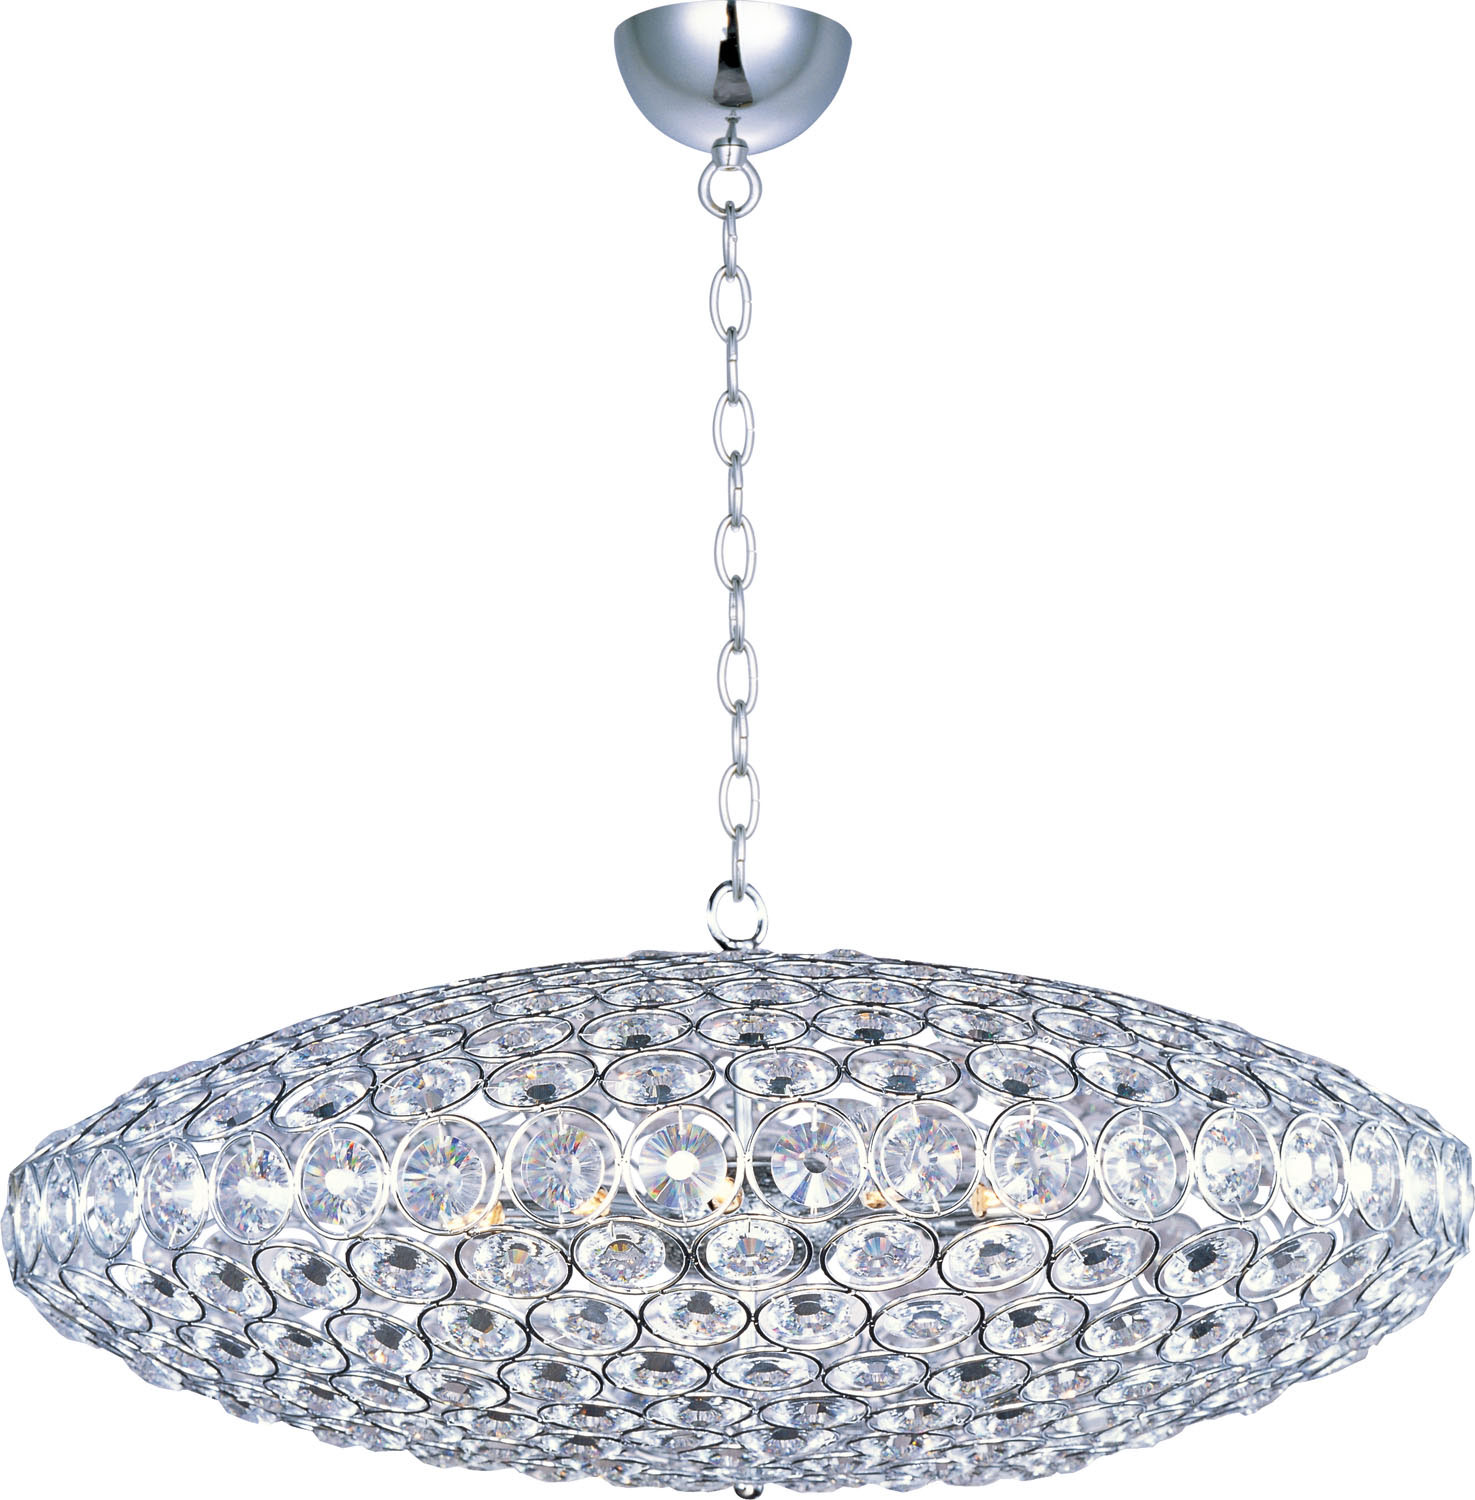 12 Light Pendant from the Brilliant collection by ET2 E24013 20PC